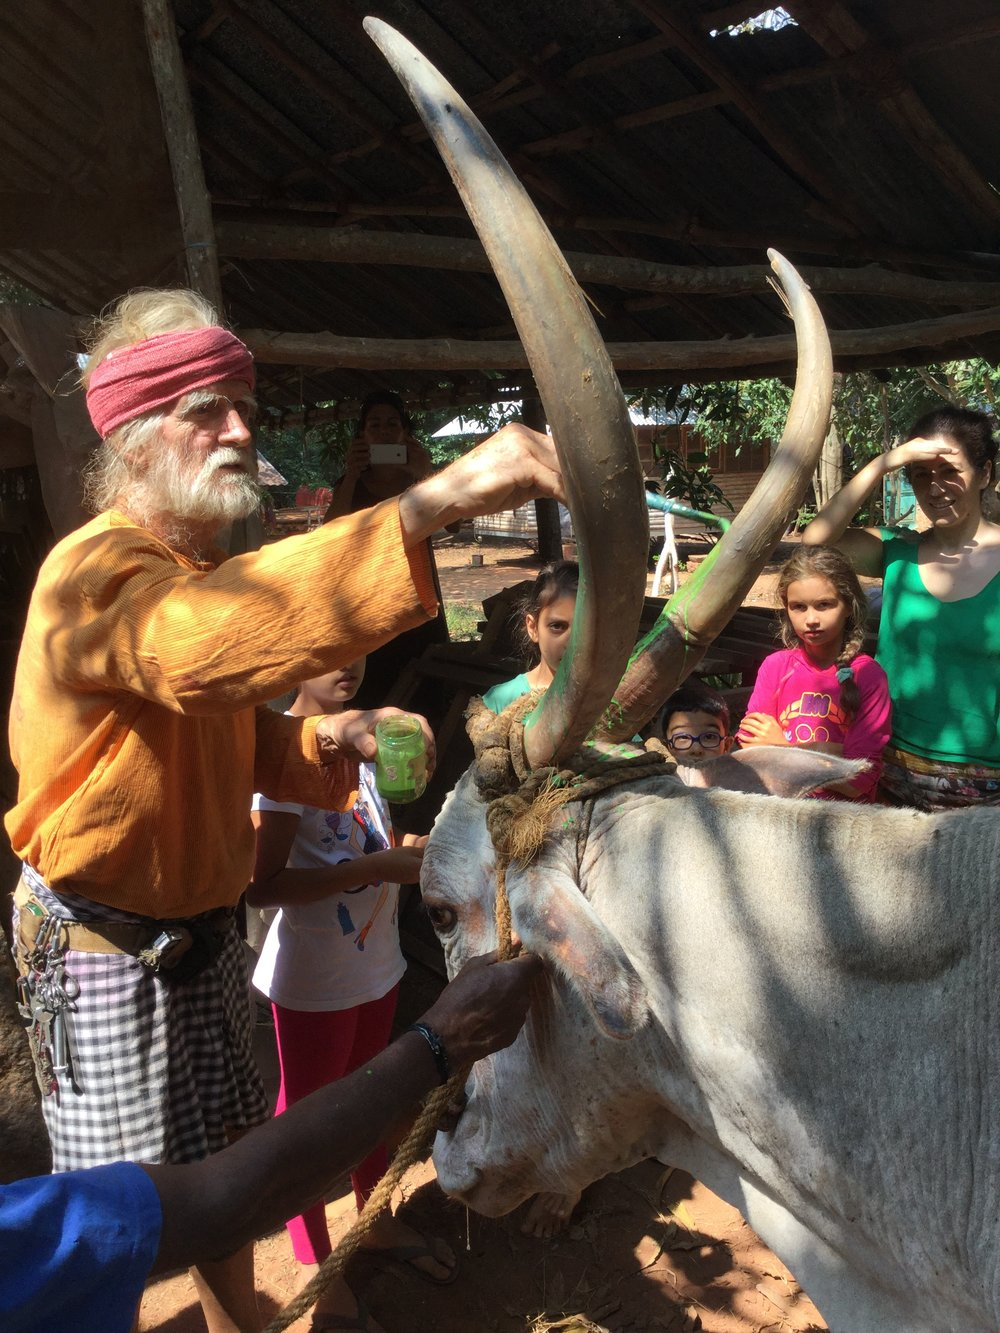 Johnny painting the bull's horns. Painted bovine is a big part of Pongal...